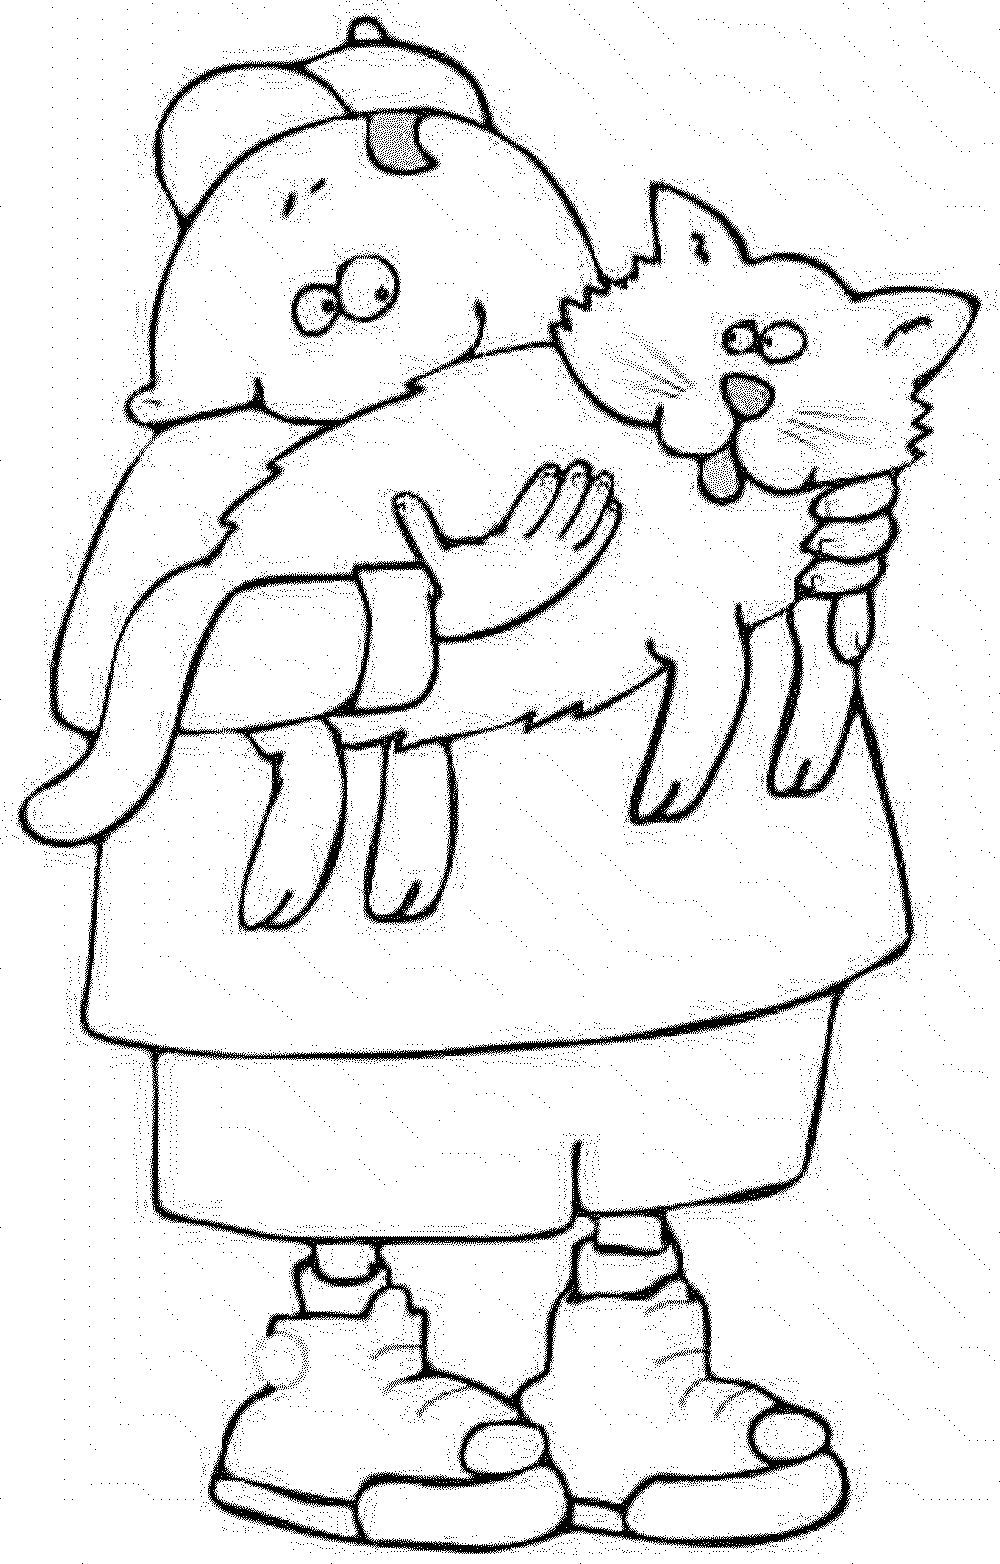 halloween cat coloring pages halloween cats free printable templates coloring pages cat halloween coloring pages